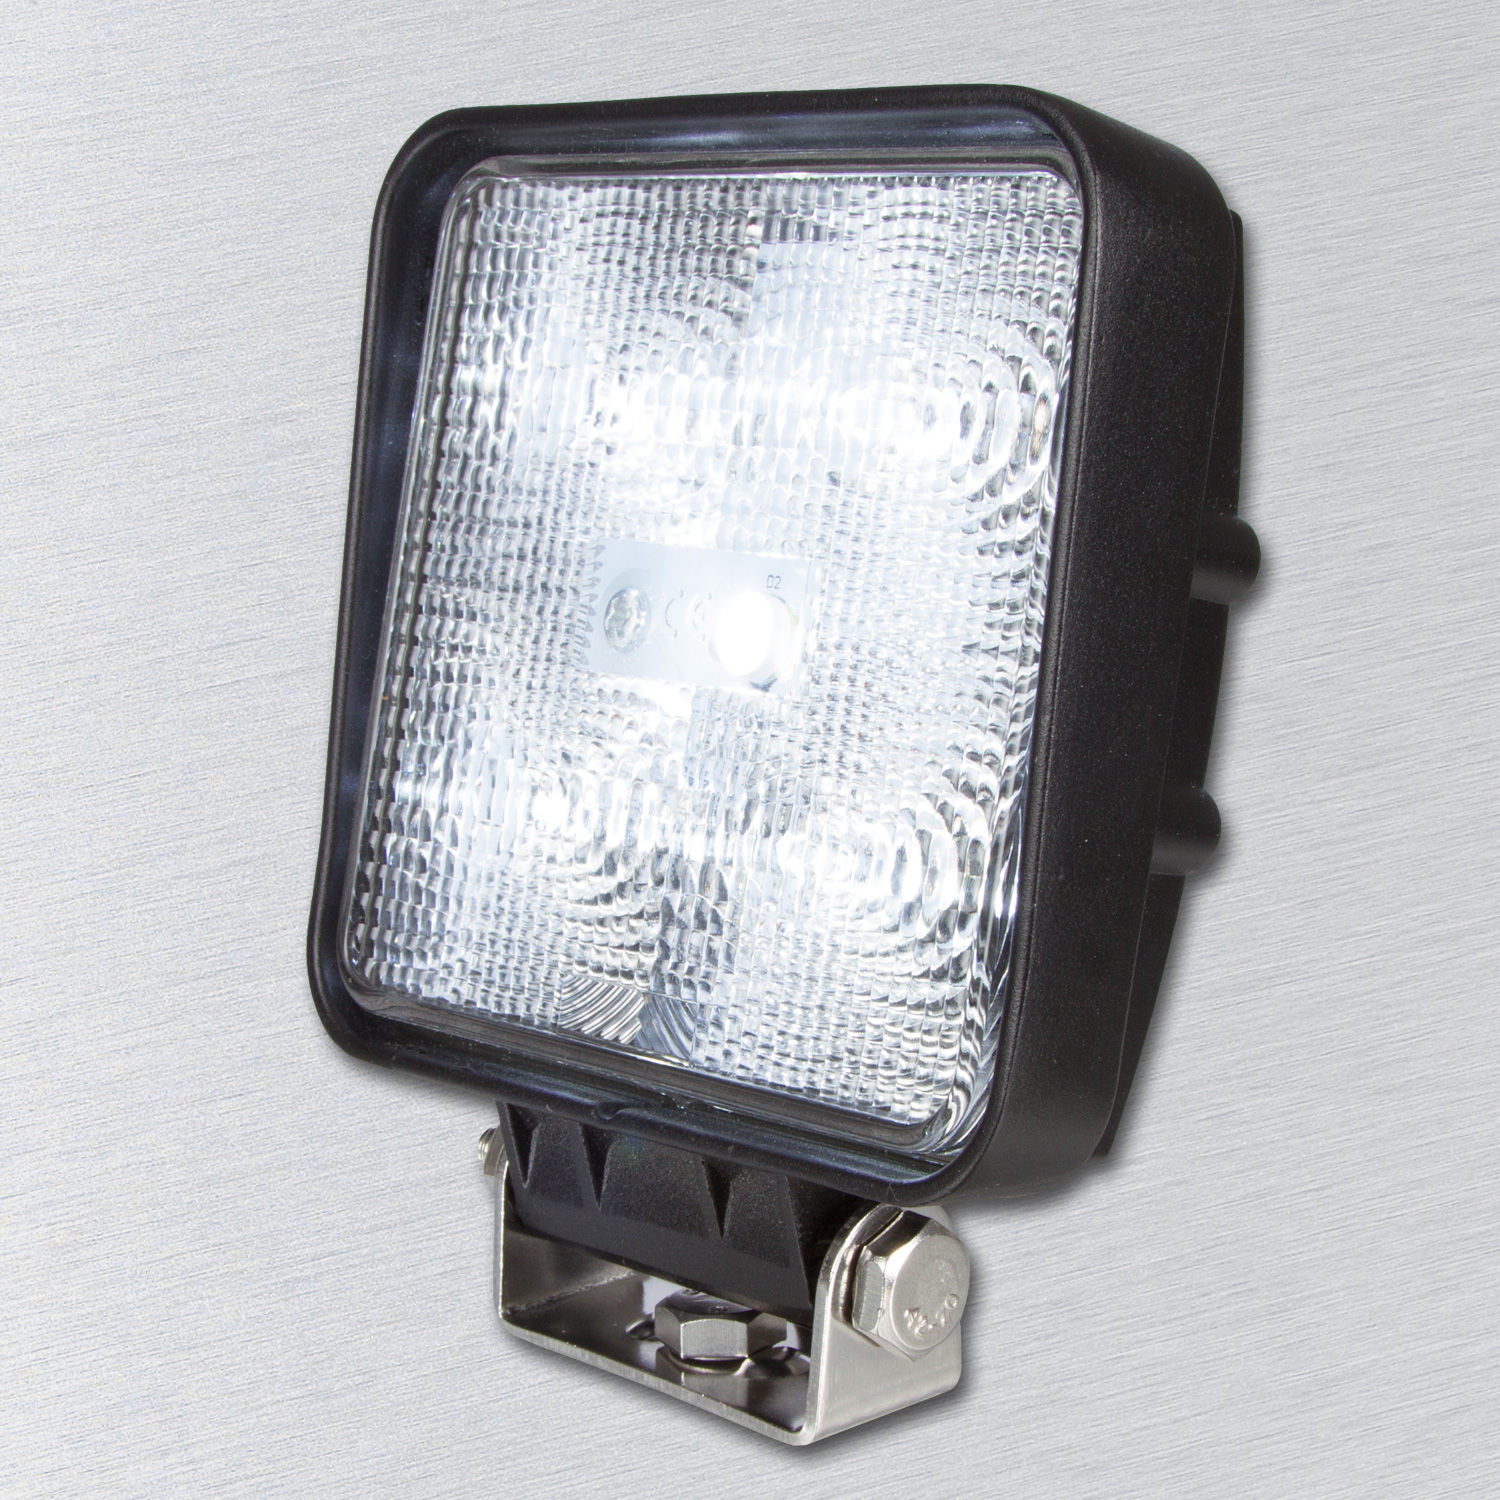 LED Work Light with water protection and anti-corrosion